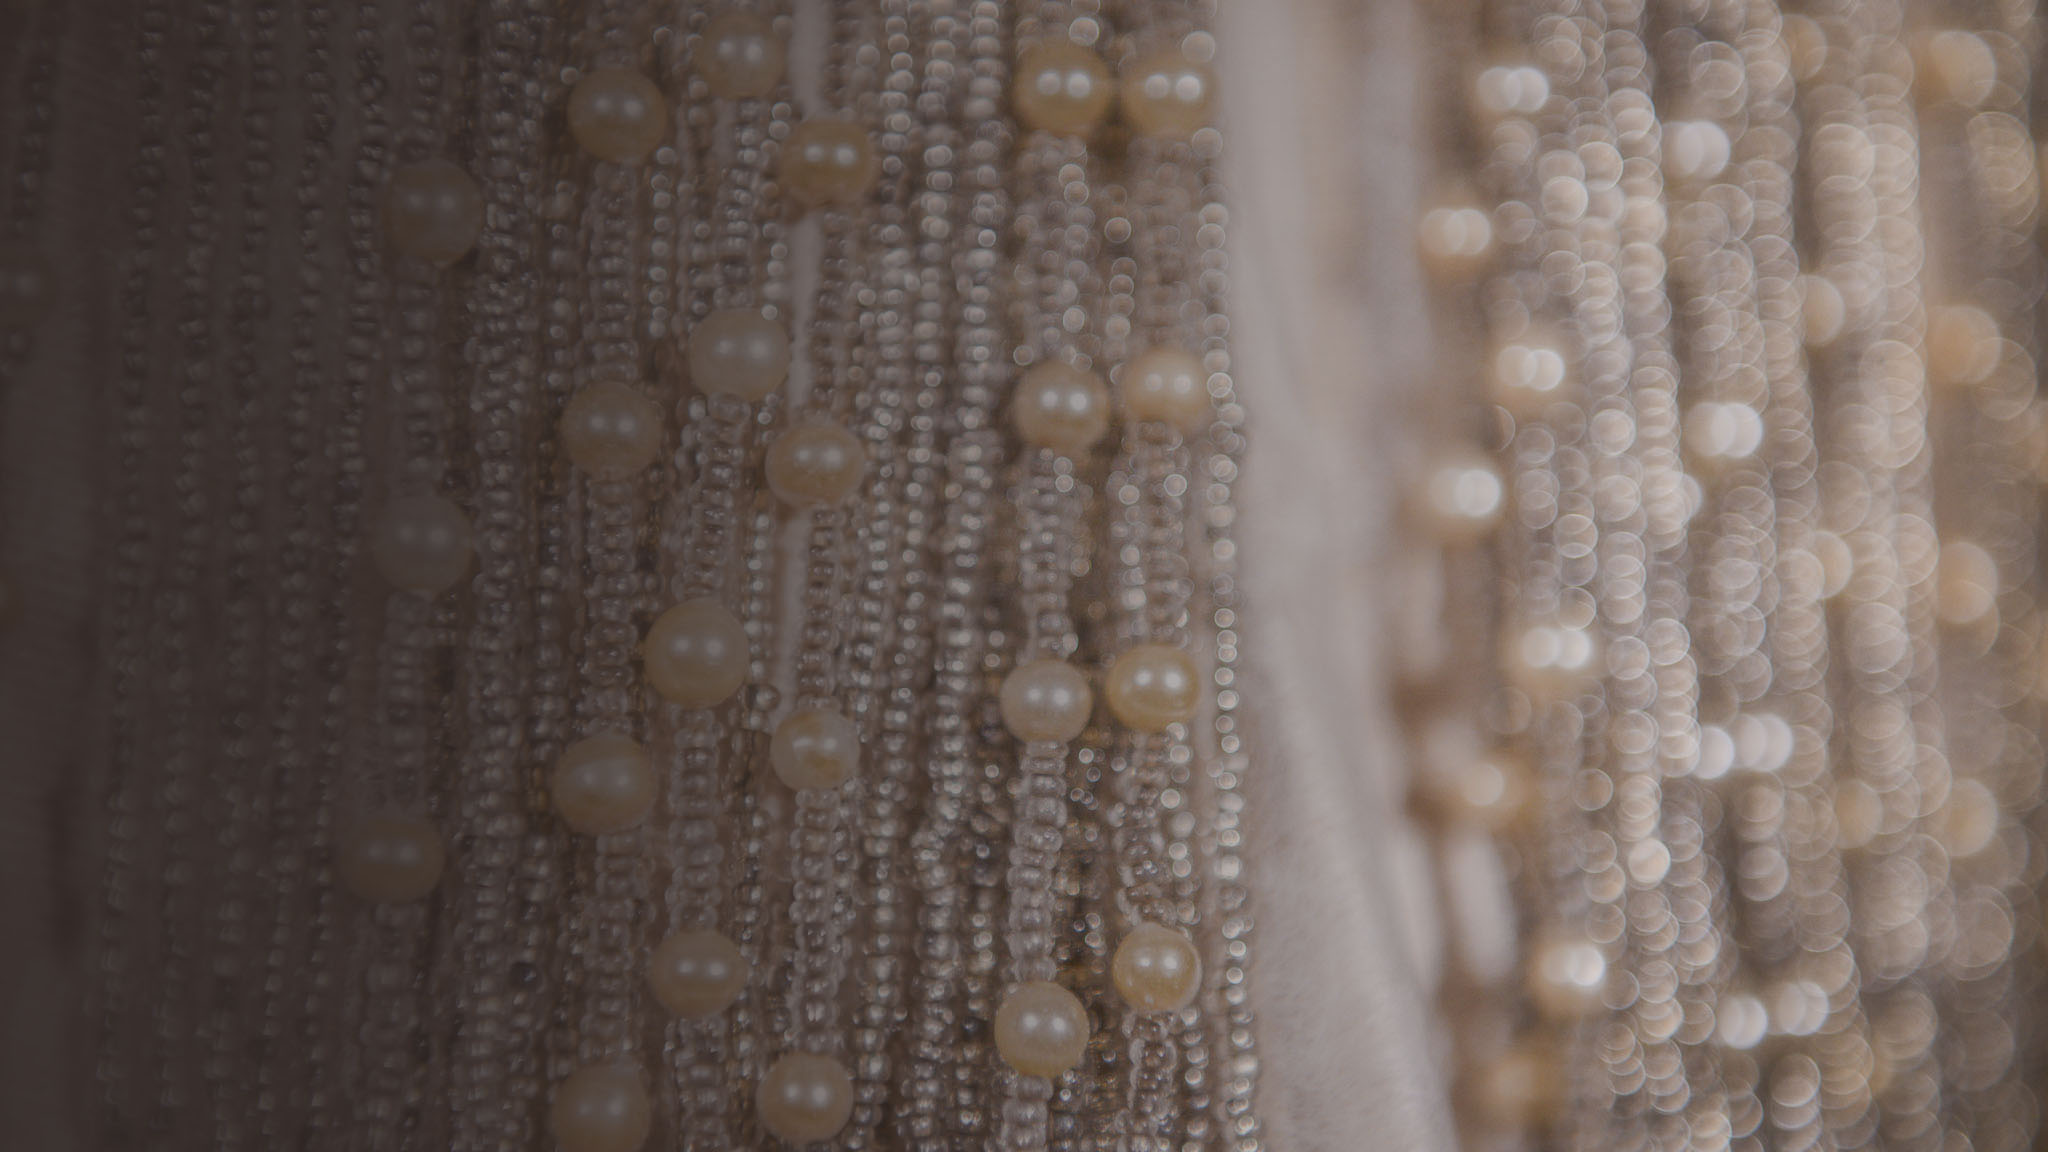 Photographic image of many strands of pearls and beads.